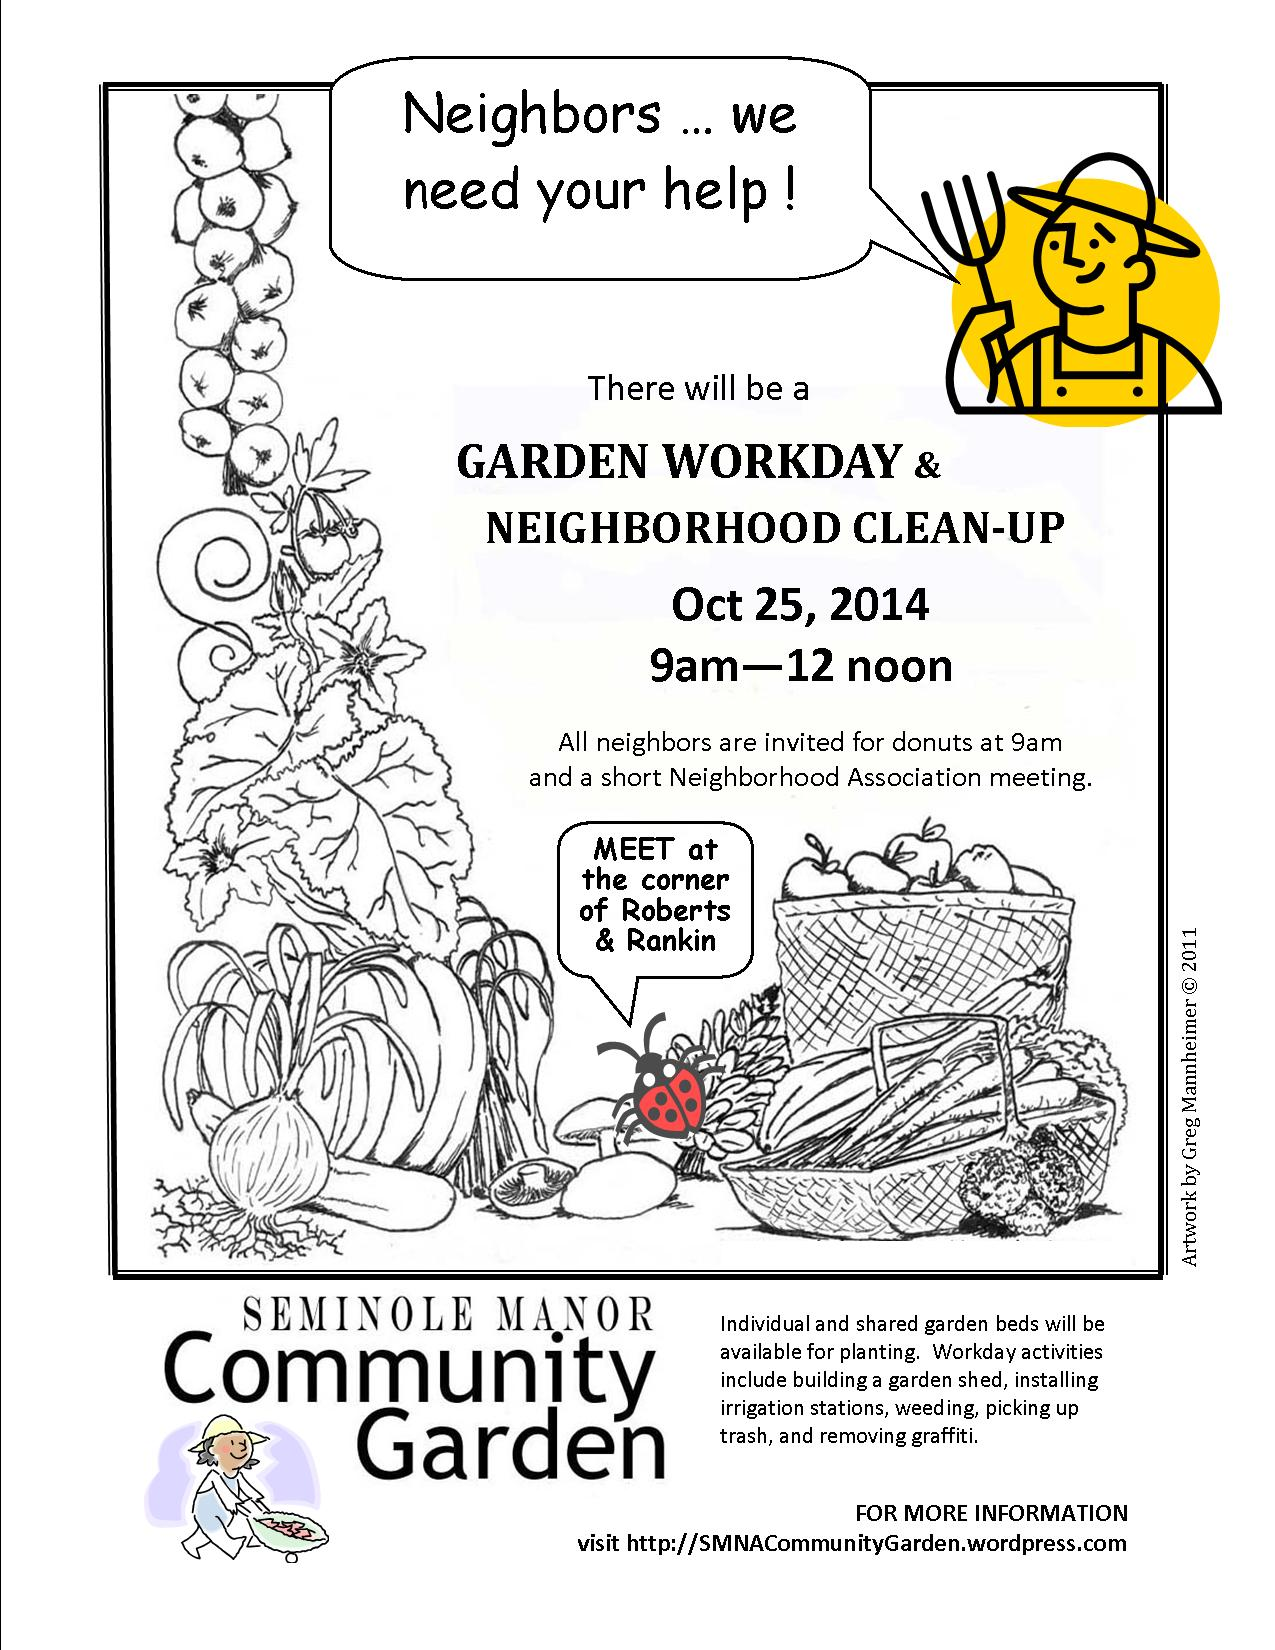 FREE DONUTS … with participation in neighborhood clean-up